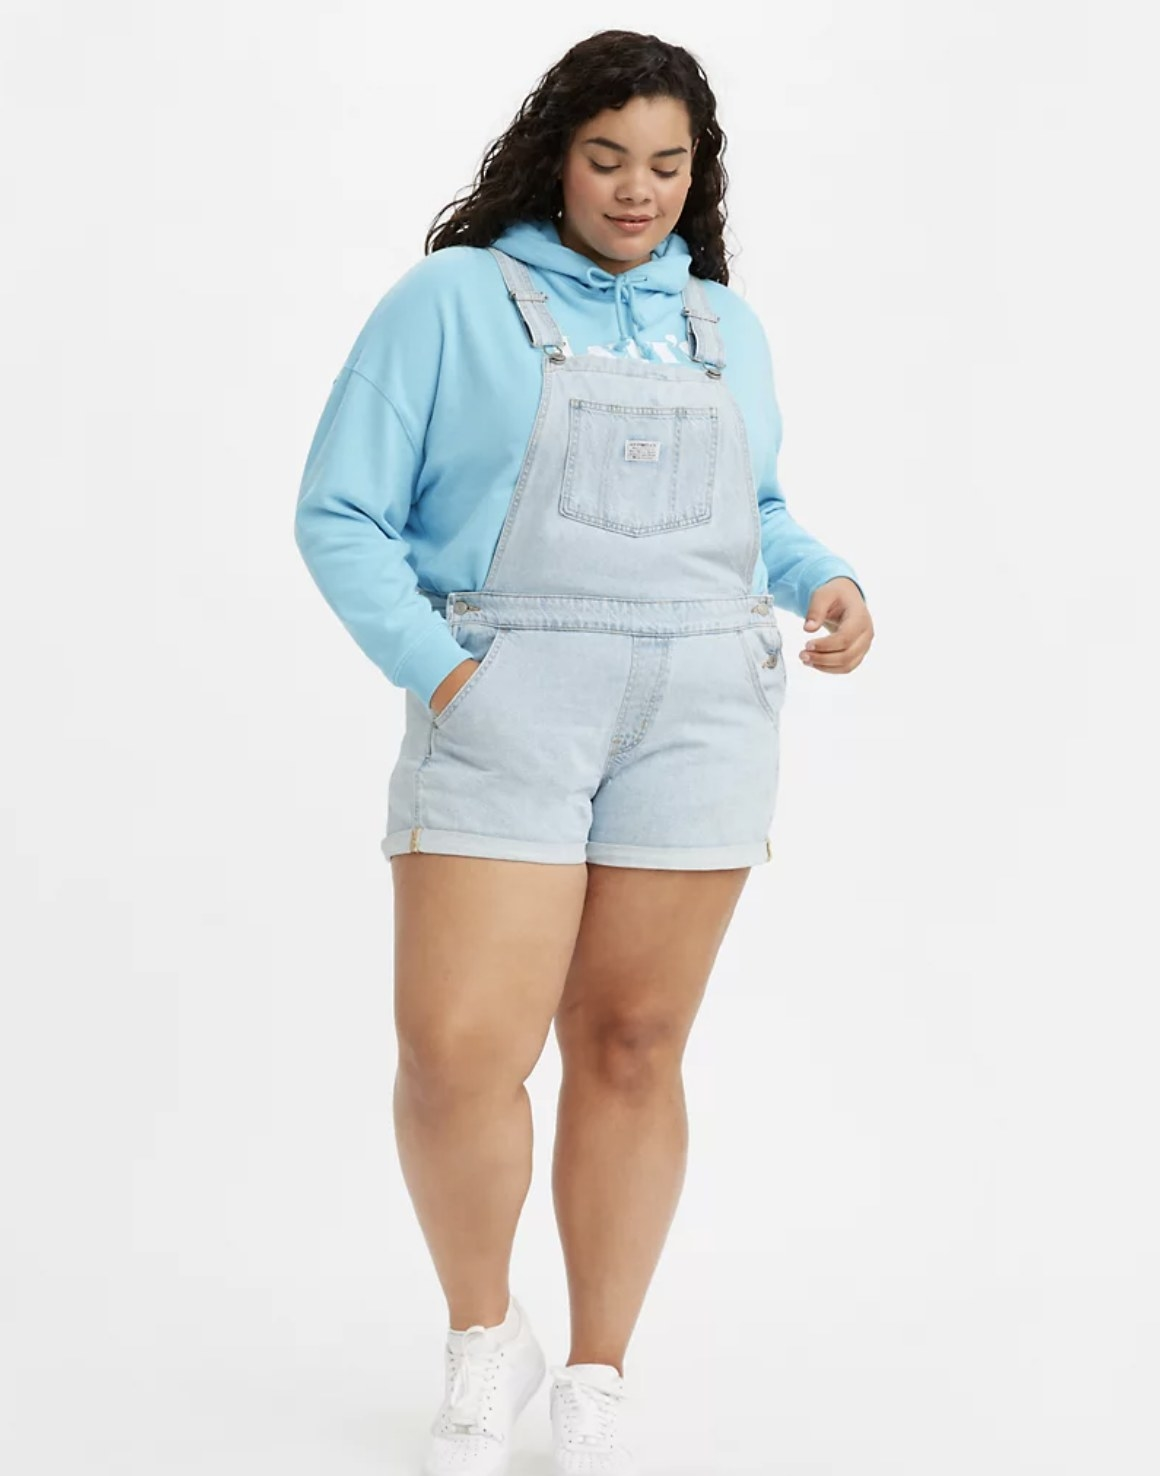 Model is wearing a light blue hoodies and a light wash denim shortall